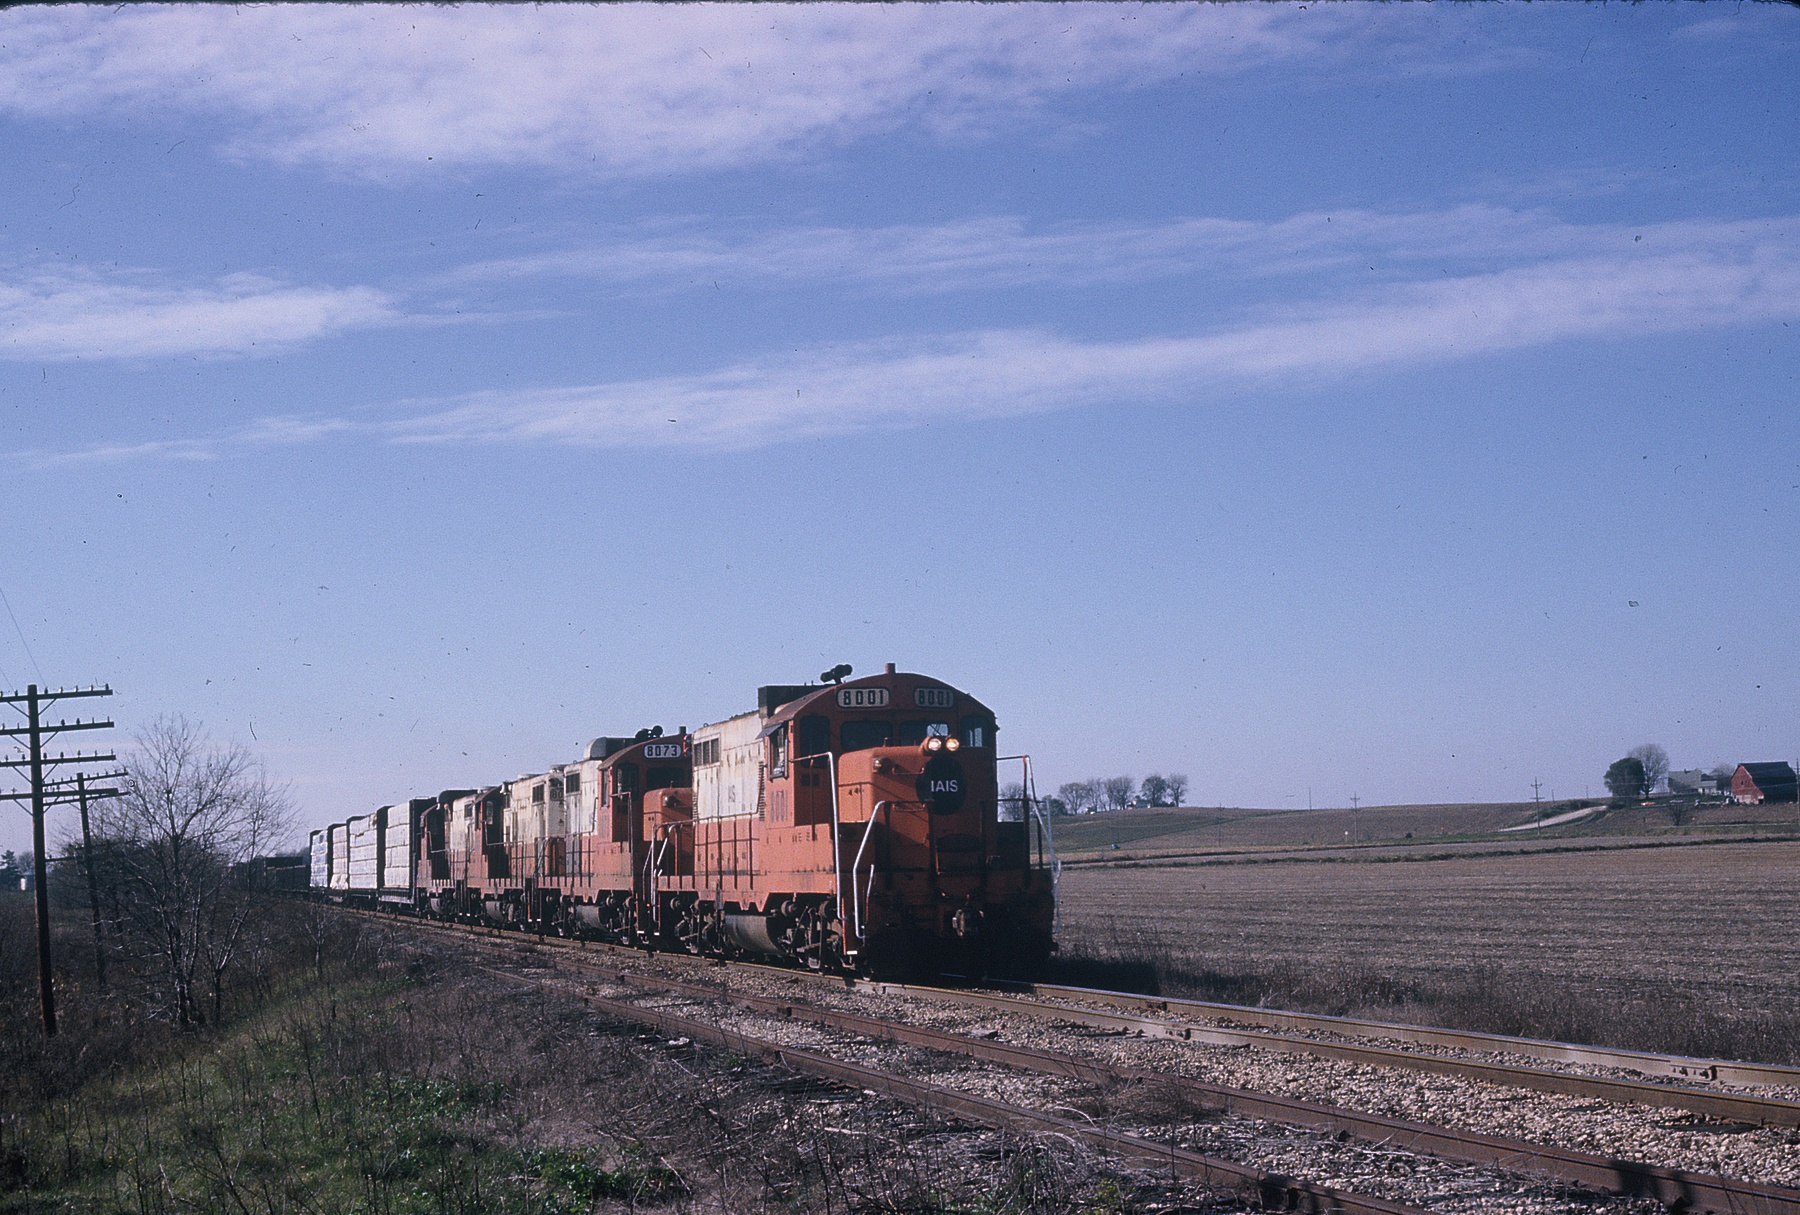 Eastbound betwee West Lib. and Atalissa, 11-3-85.